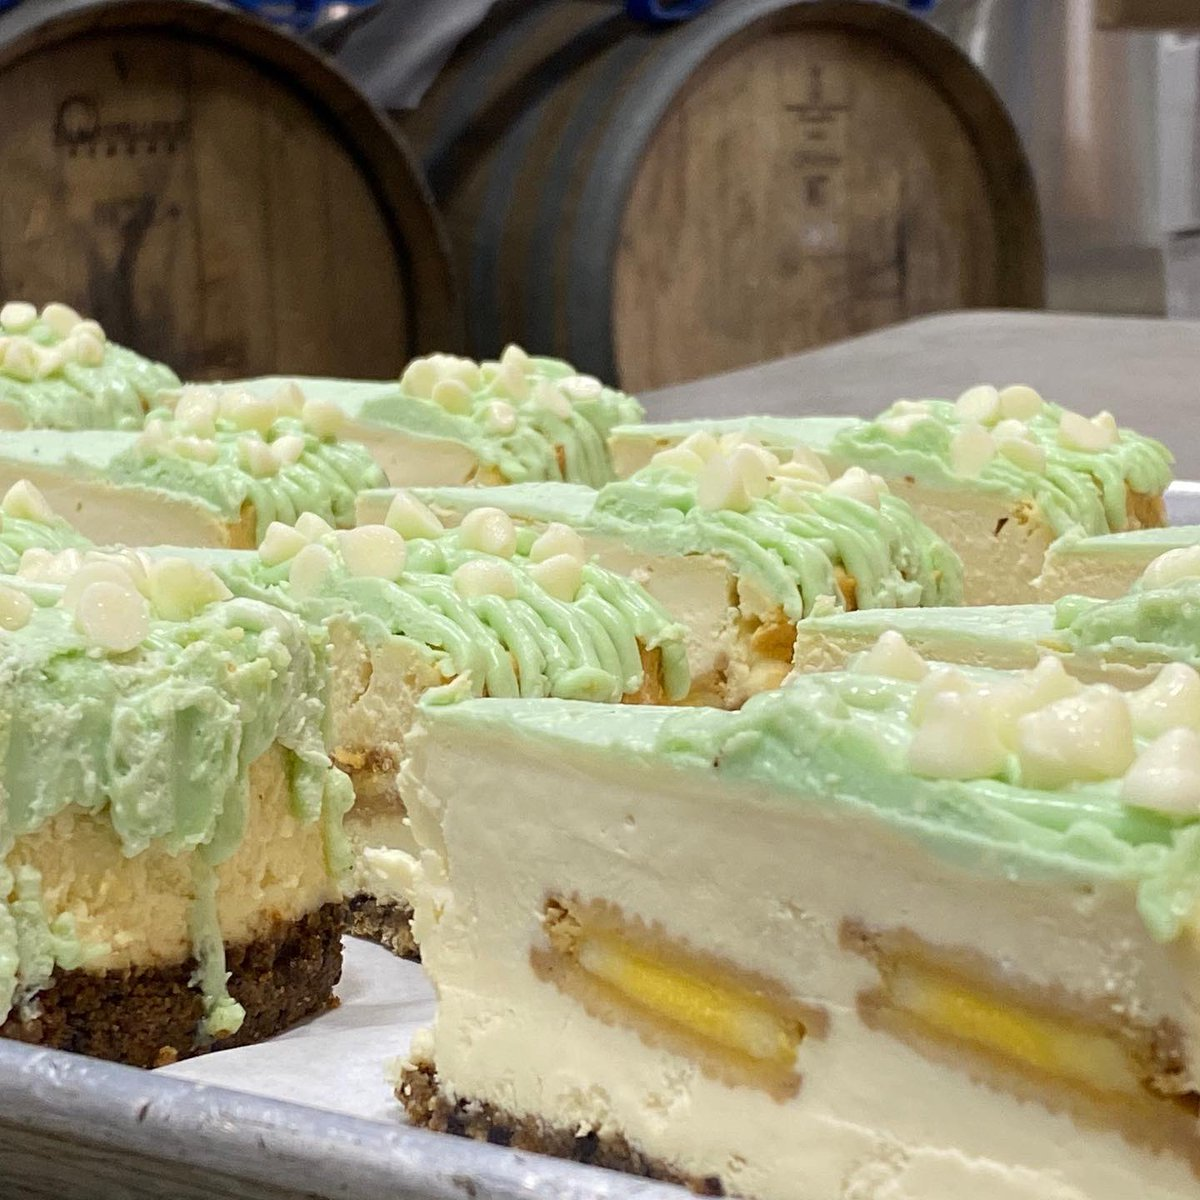 The best cheesecake you'll ever have made right here in NM by the talented father of one of our talented brewers! Willie Ray's Key Lime Cheesecake, on our menu, in your belly.  😋😋😋#supportlocal #builttobrew #losranchos #losranchosbrew #burque #newmexico #eatlocal #foodie https://t.co/GBd07w1Ybi